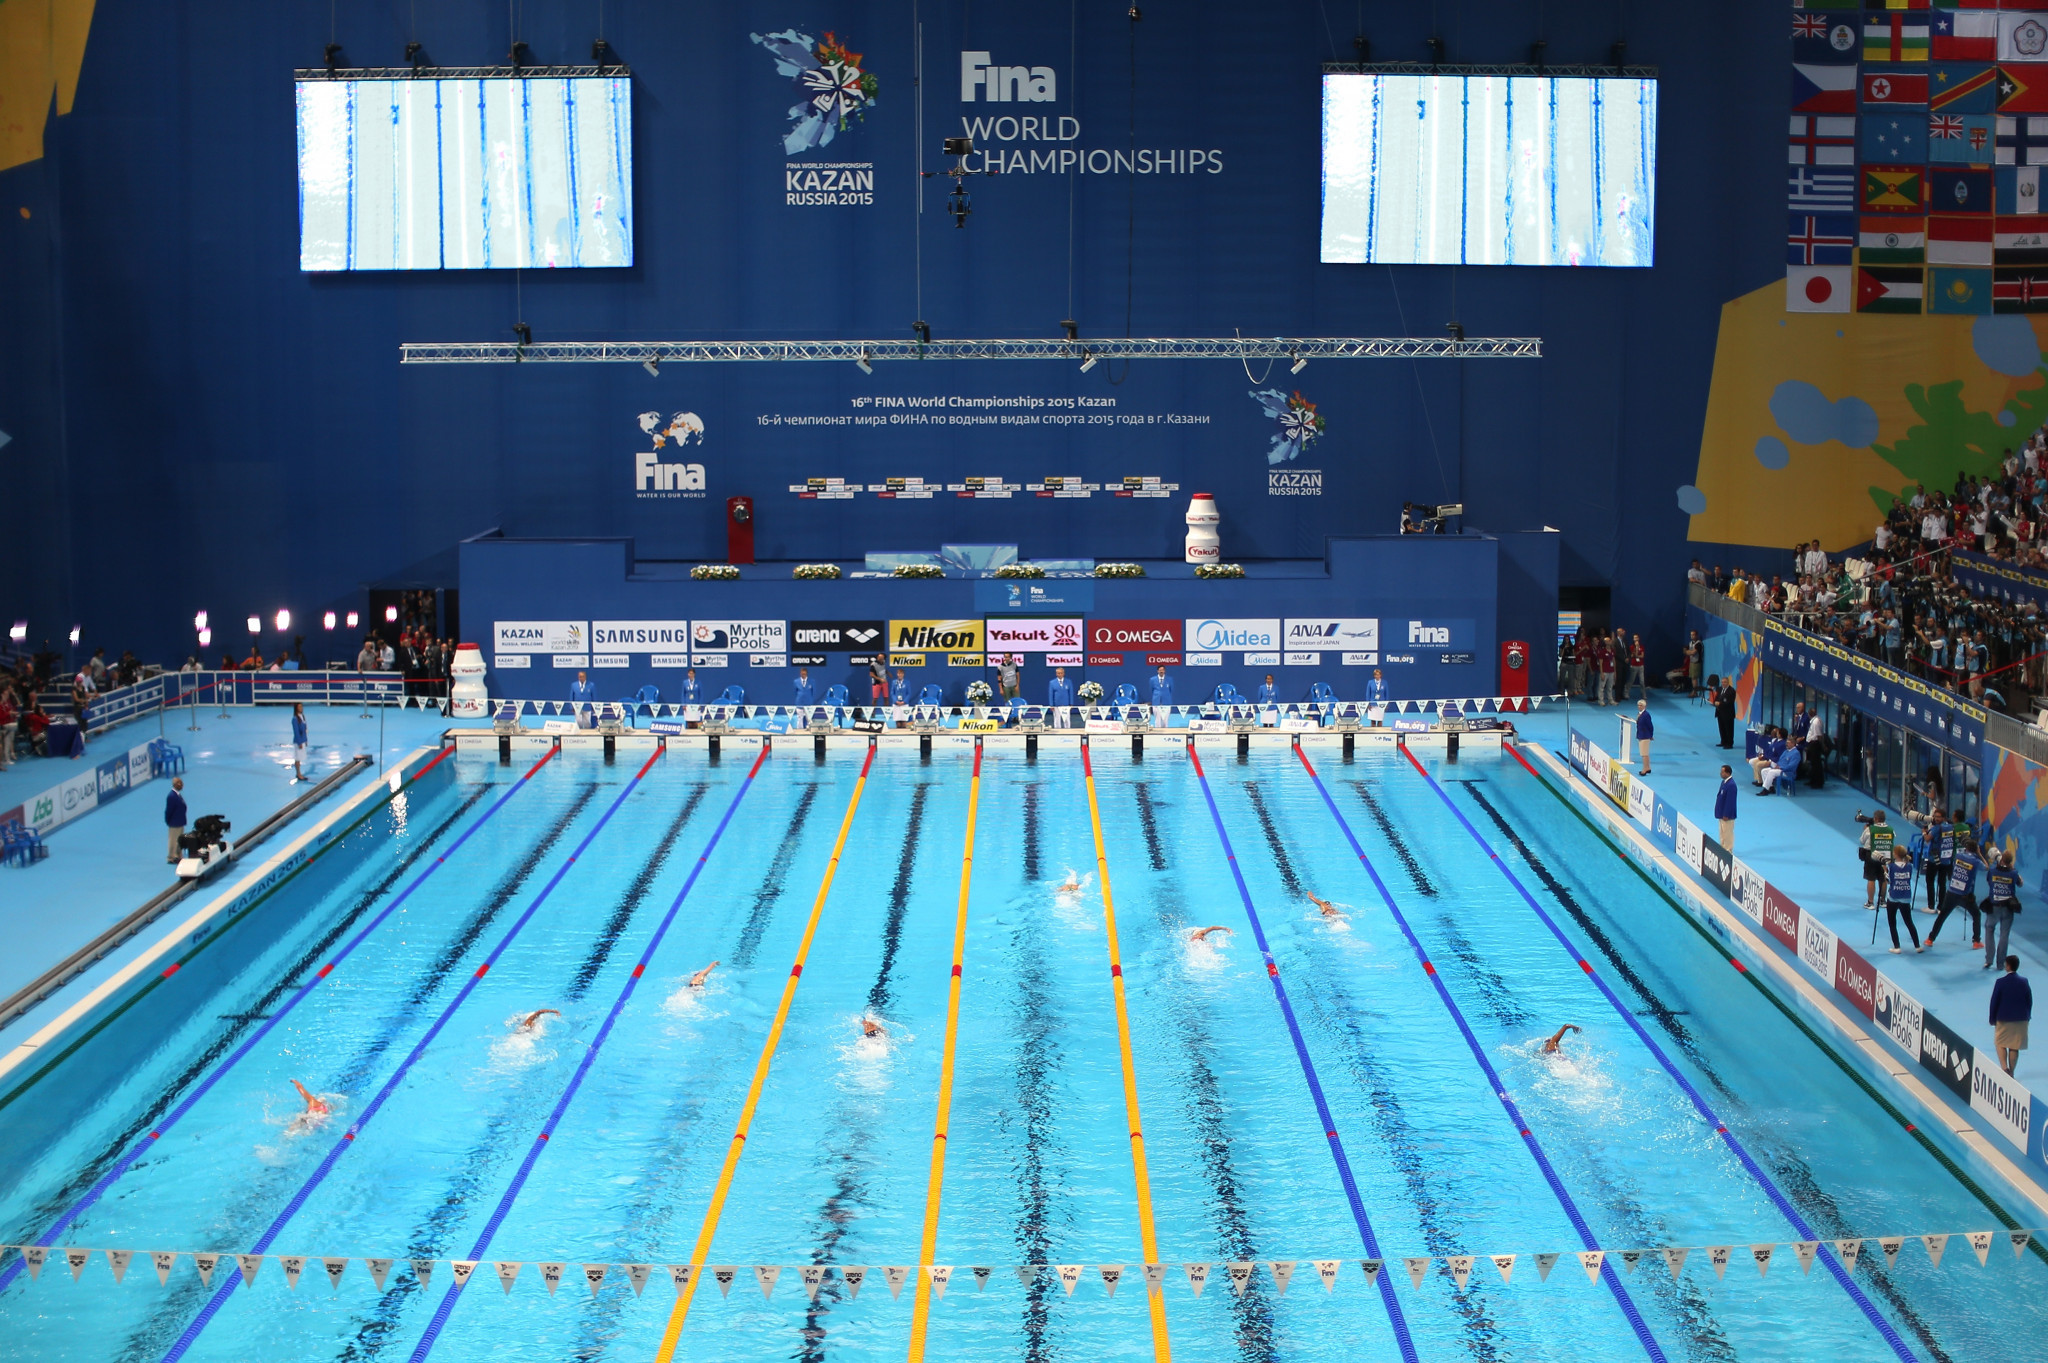 Kazan will host the World Aquatics Championships again in 2025 after successfully doing so in 2015 ©Getty Images